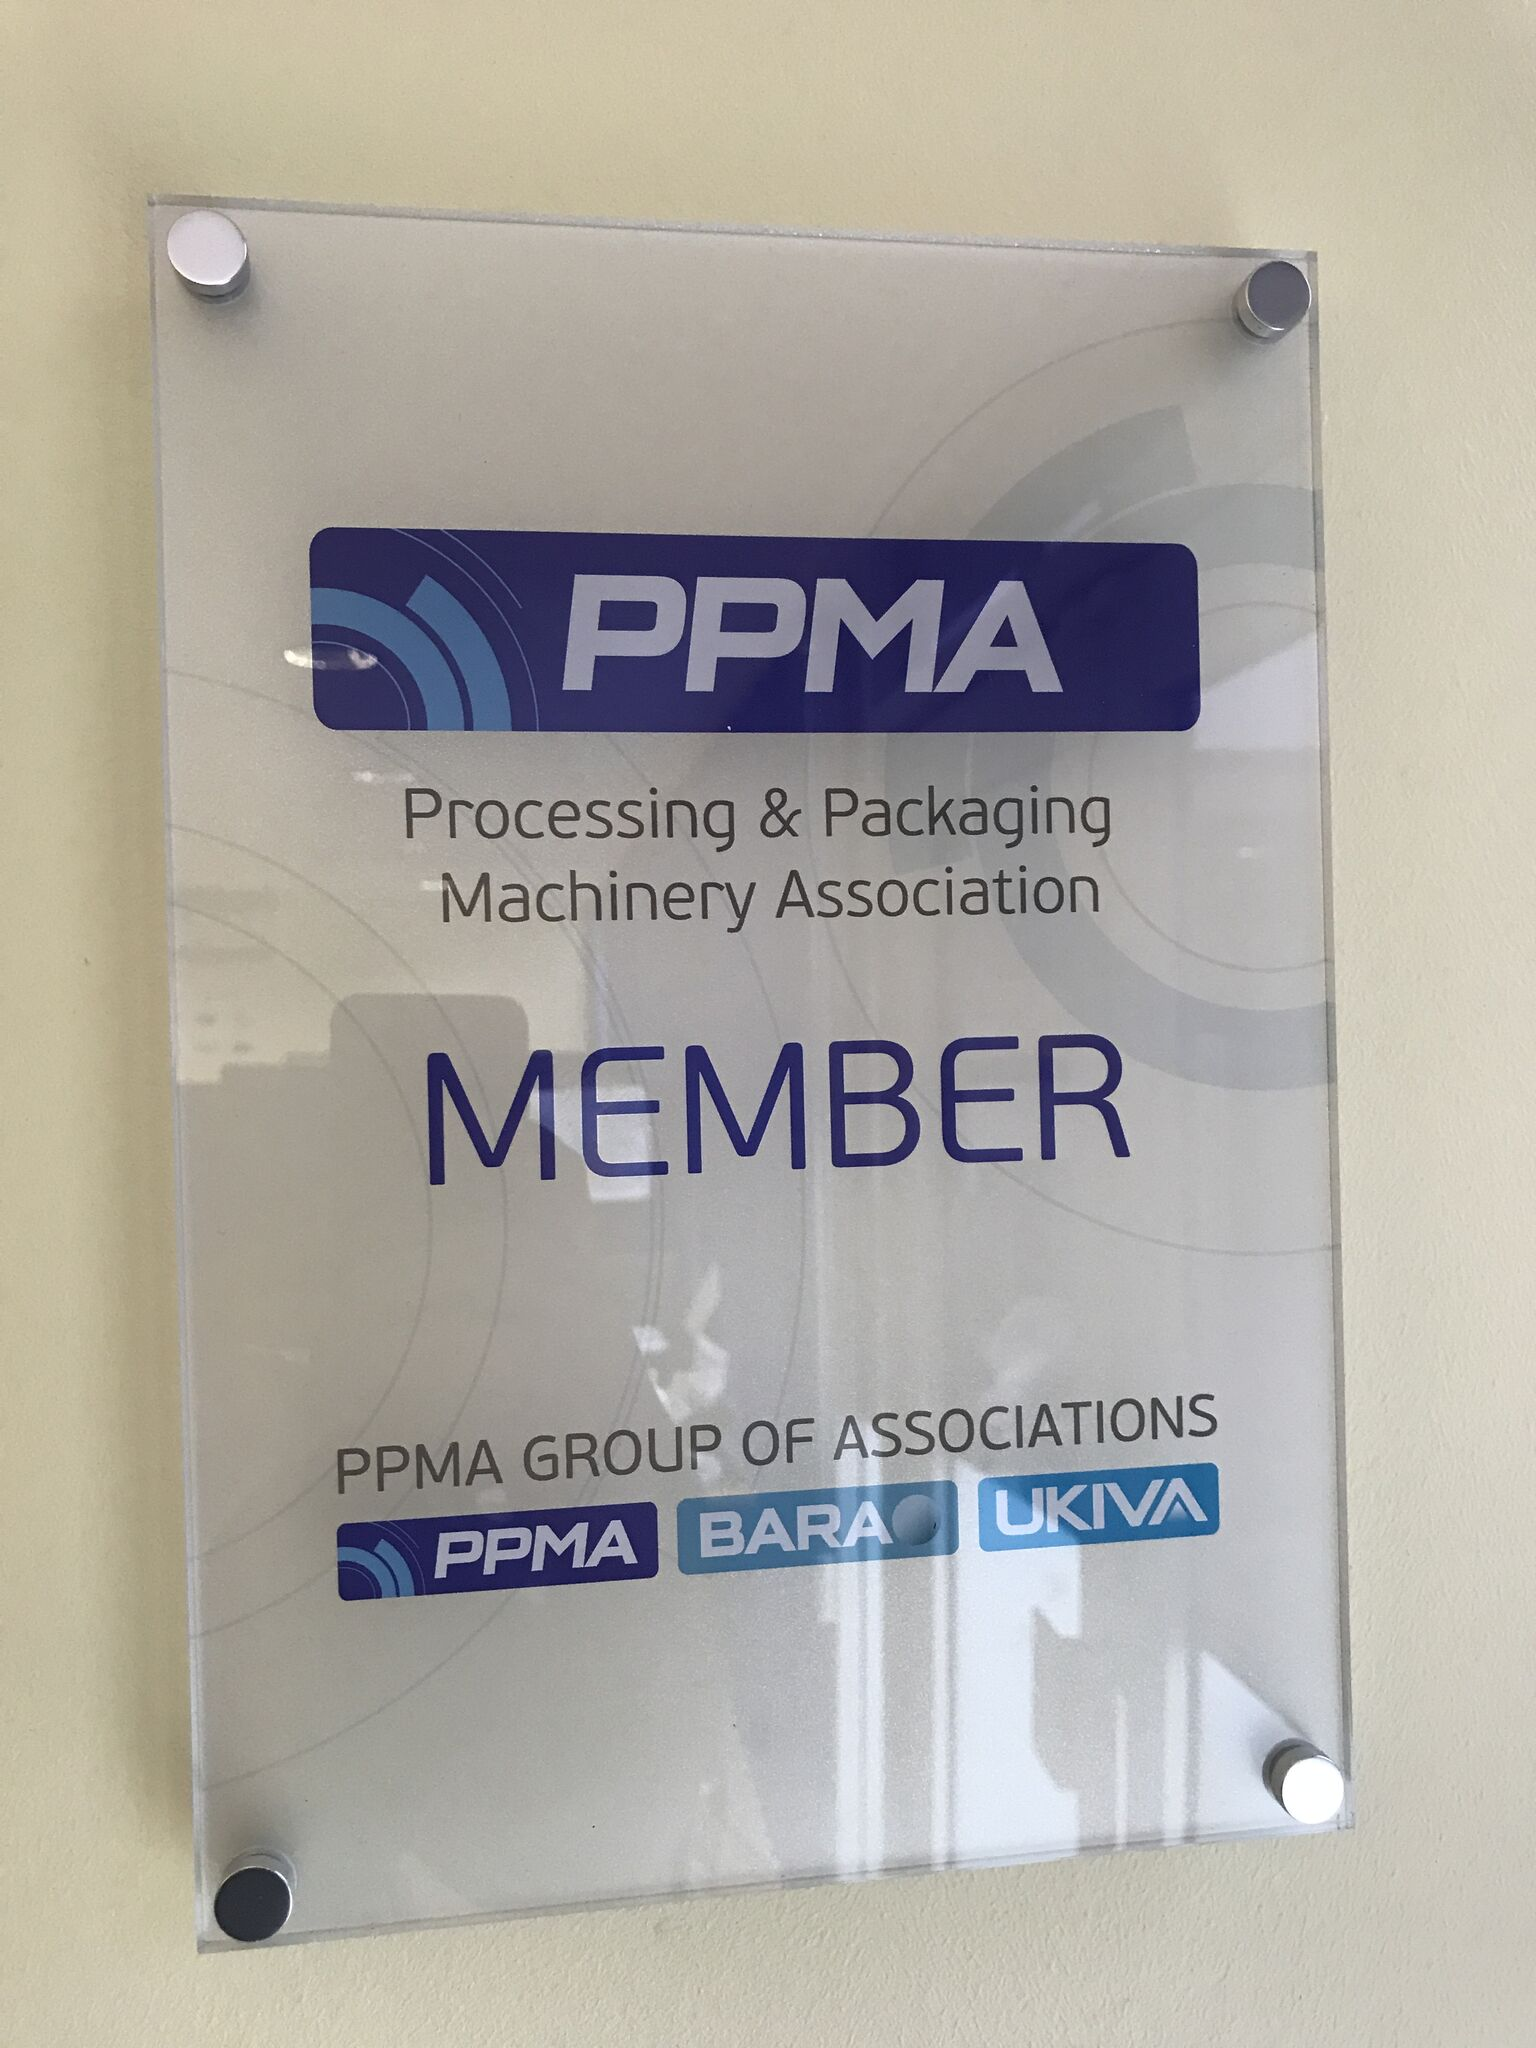 Lift Safe Are Proud To Be Members Of The PPMA (Processing & Packaging Machinery Association)